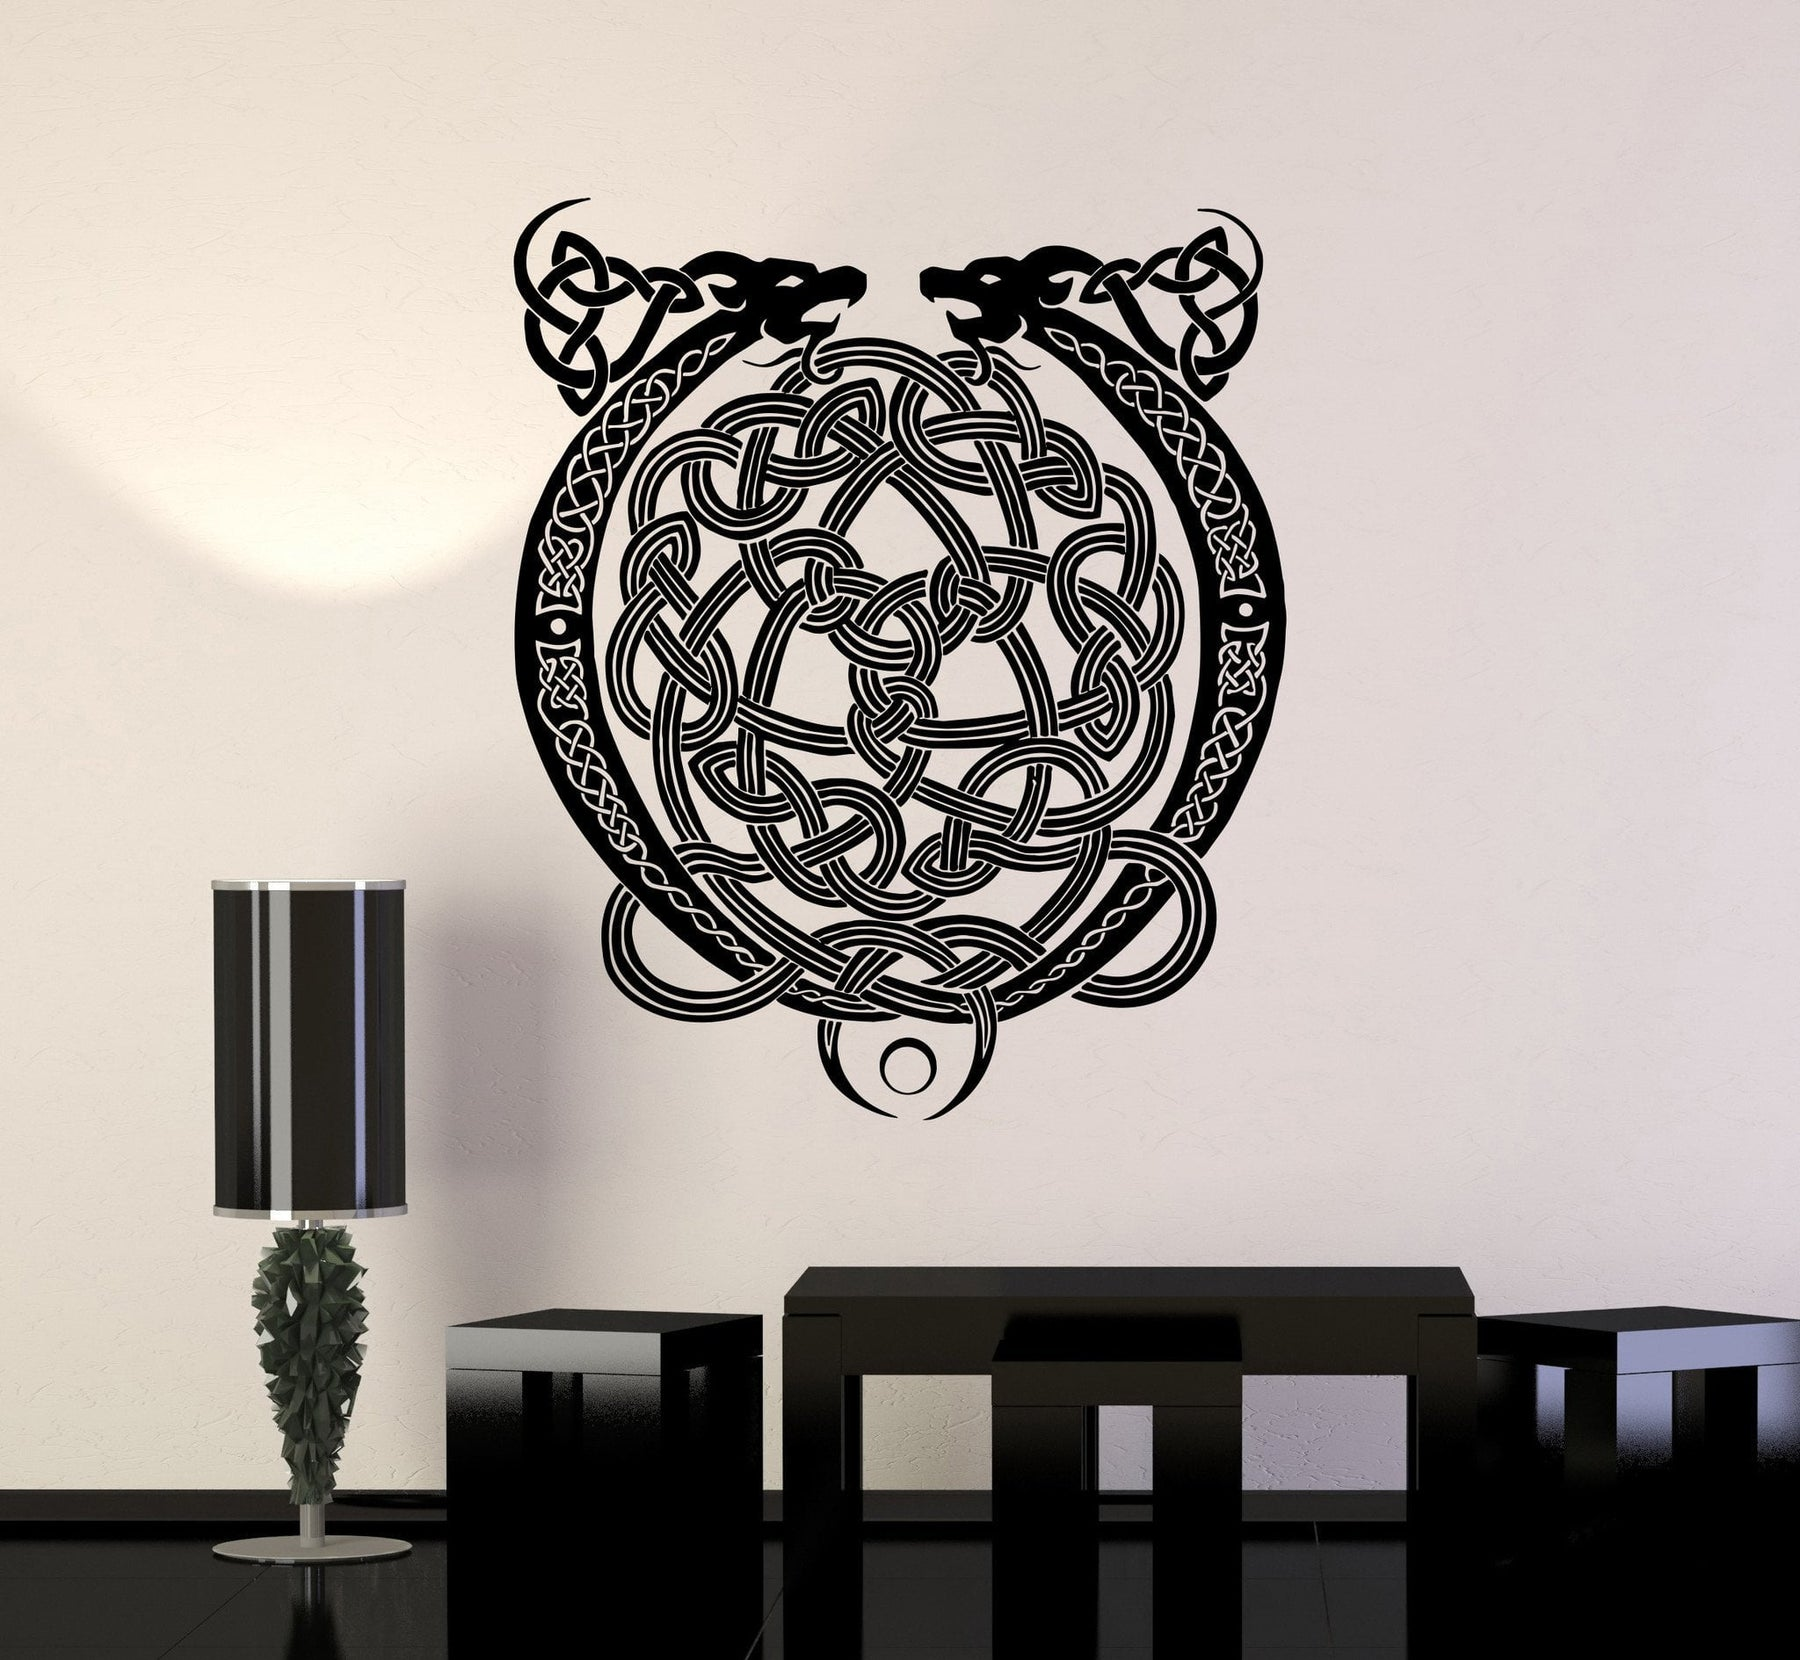 Vinyl decal celtic cross ornament dragon ireland irish pattern wall stickers unique gift ig2772